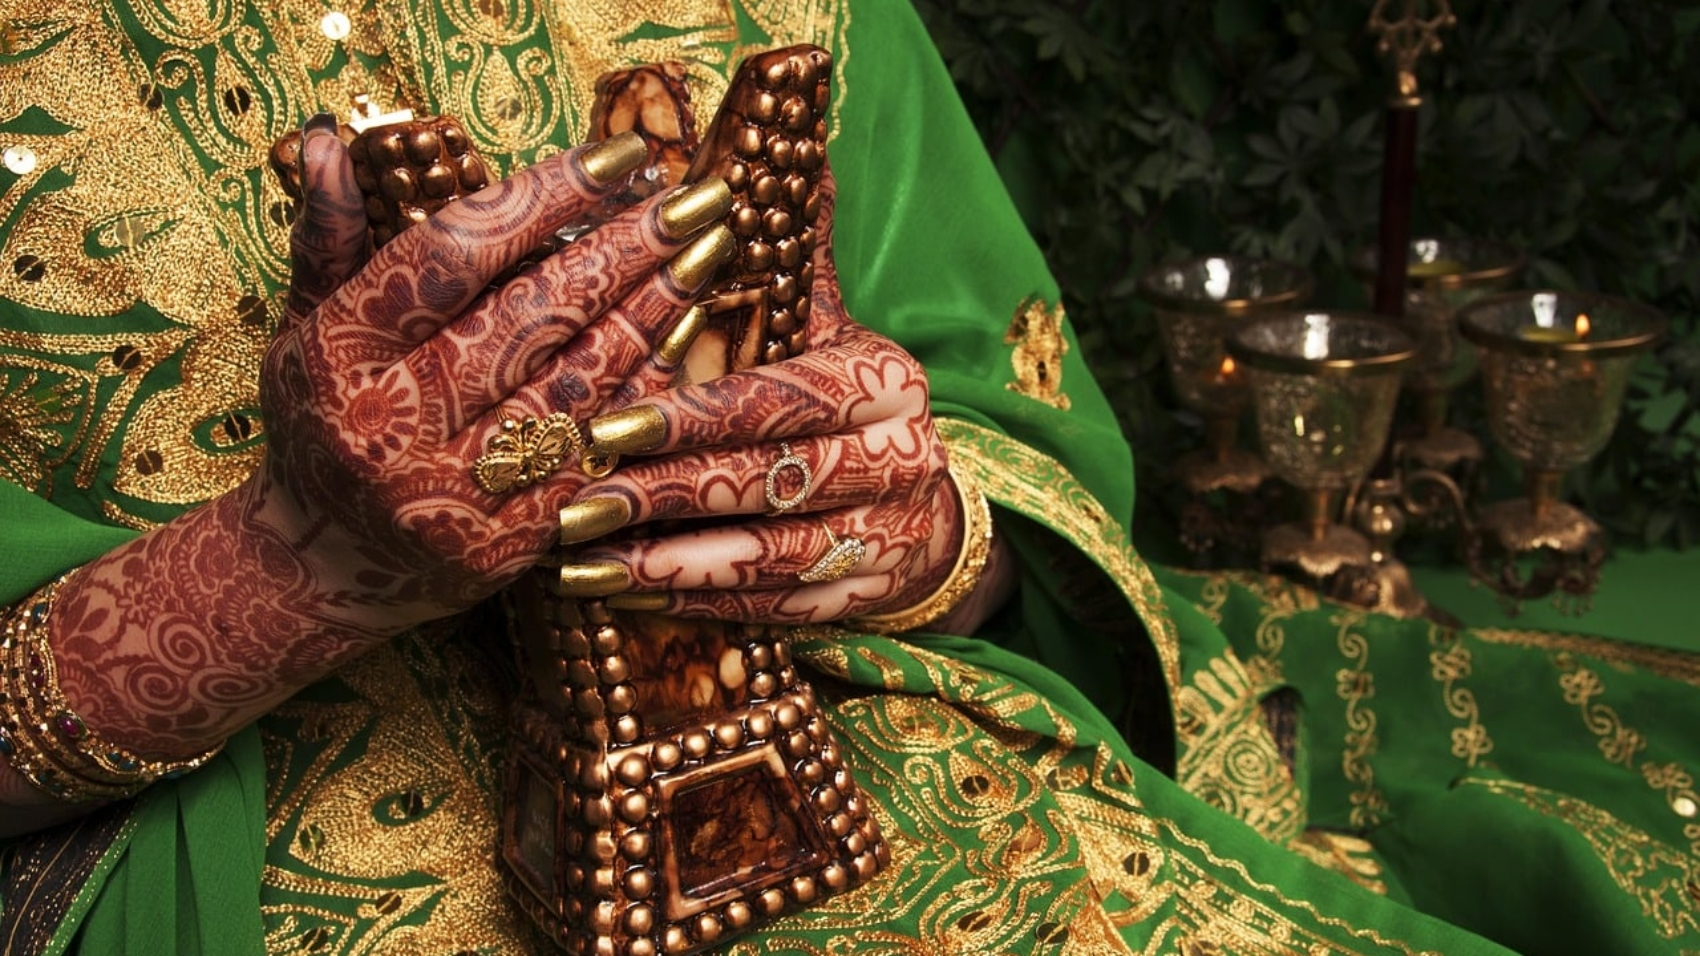 How Marrying Outside My Religious Culture Enriched My Life